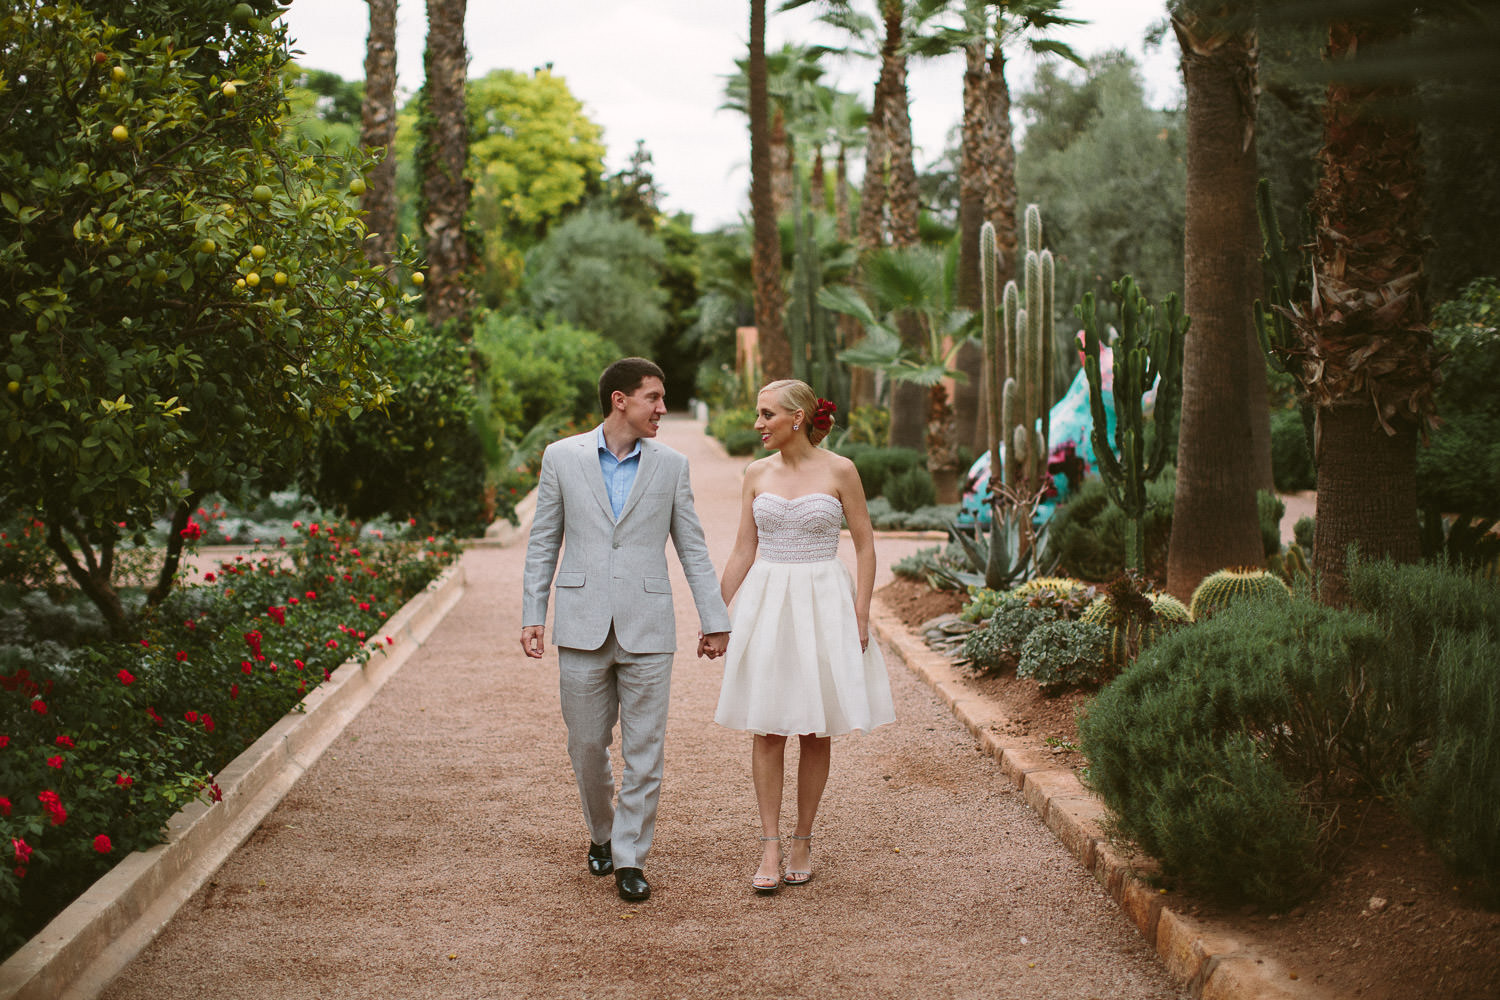 hotel la mamounia wedding marrakech 4